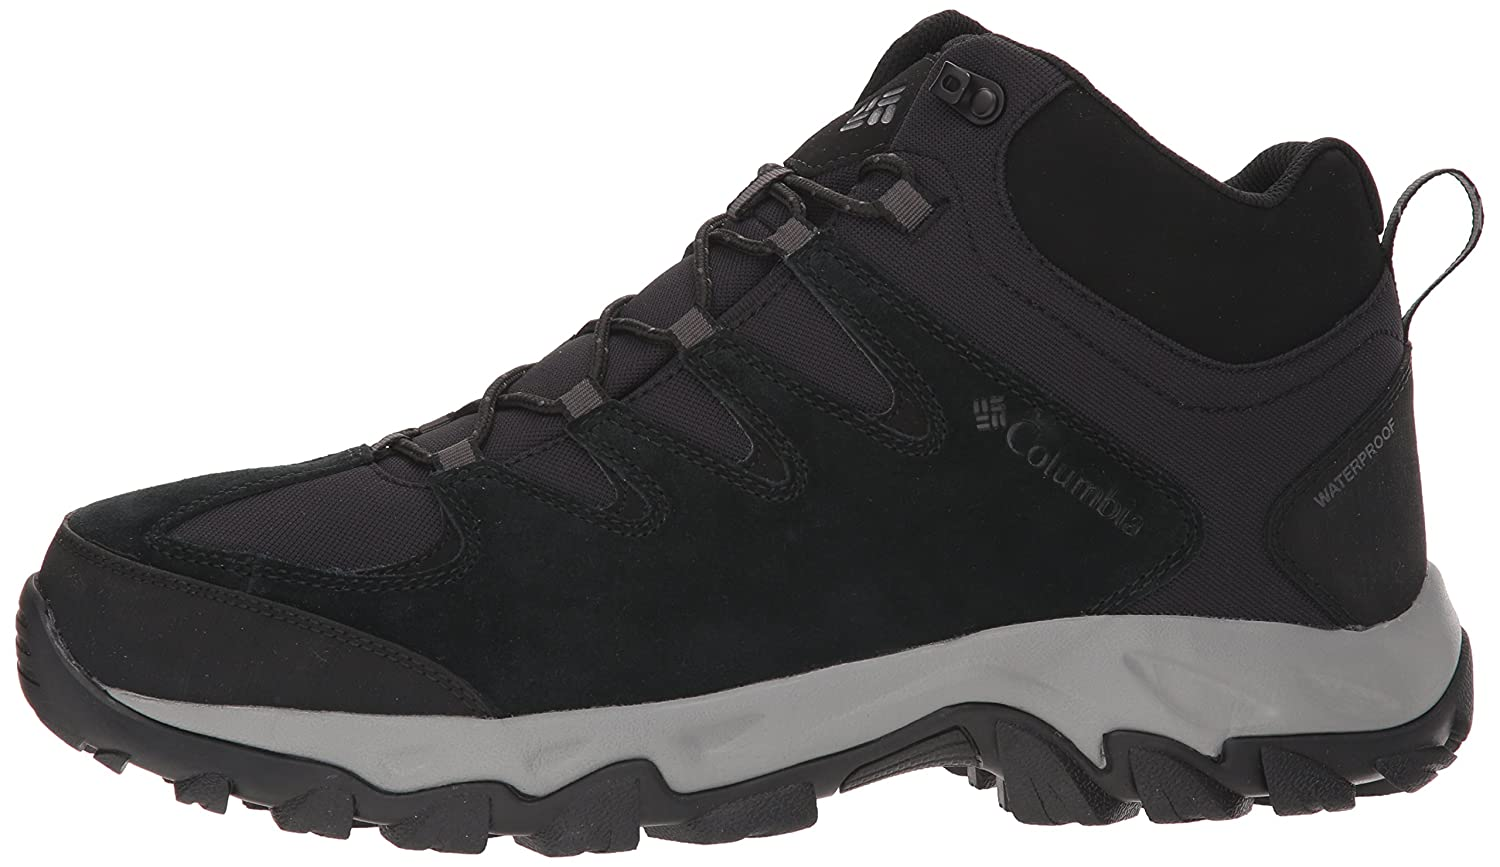 8f49f7c992 Amazon.com | Columbia Men's Buxton Peak MID Waterproof Wide Hiking Boot,  Black, lux, 7 US | Boots